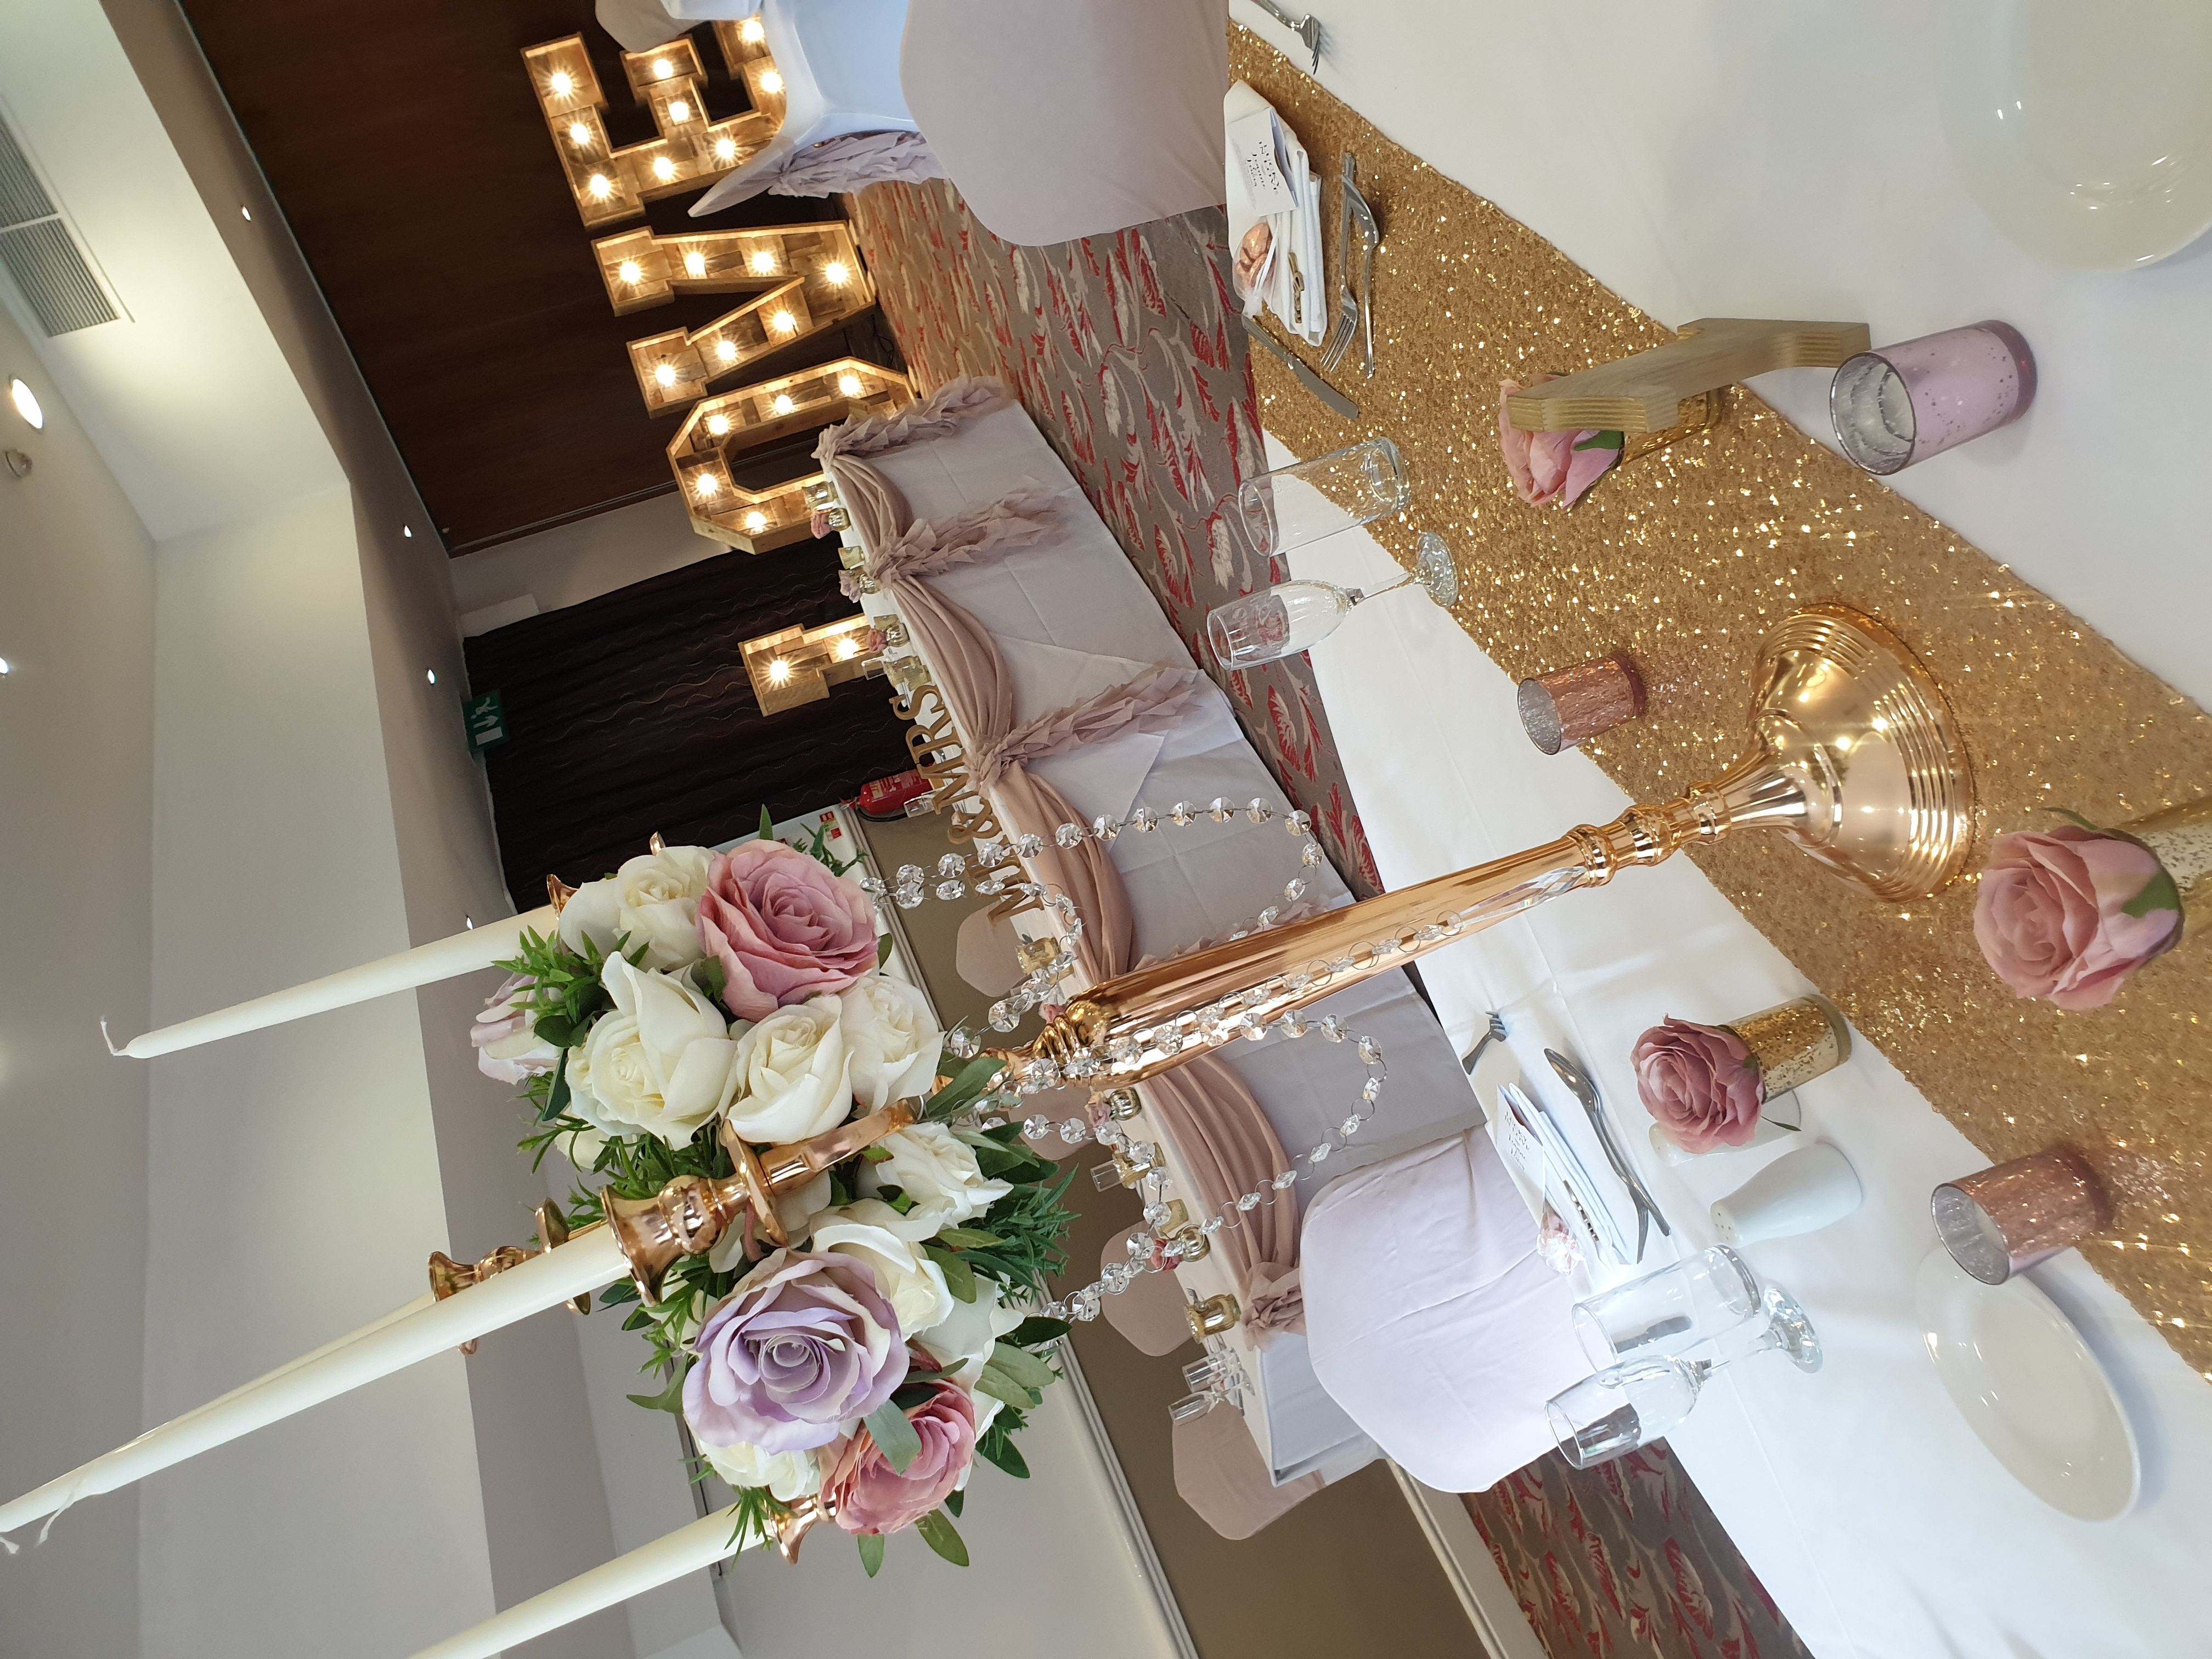 Gold Candelabra with artificial flowers